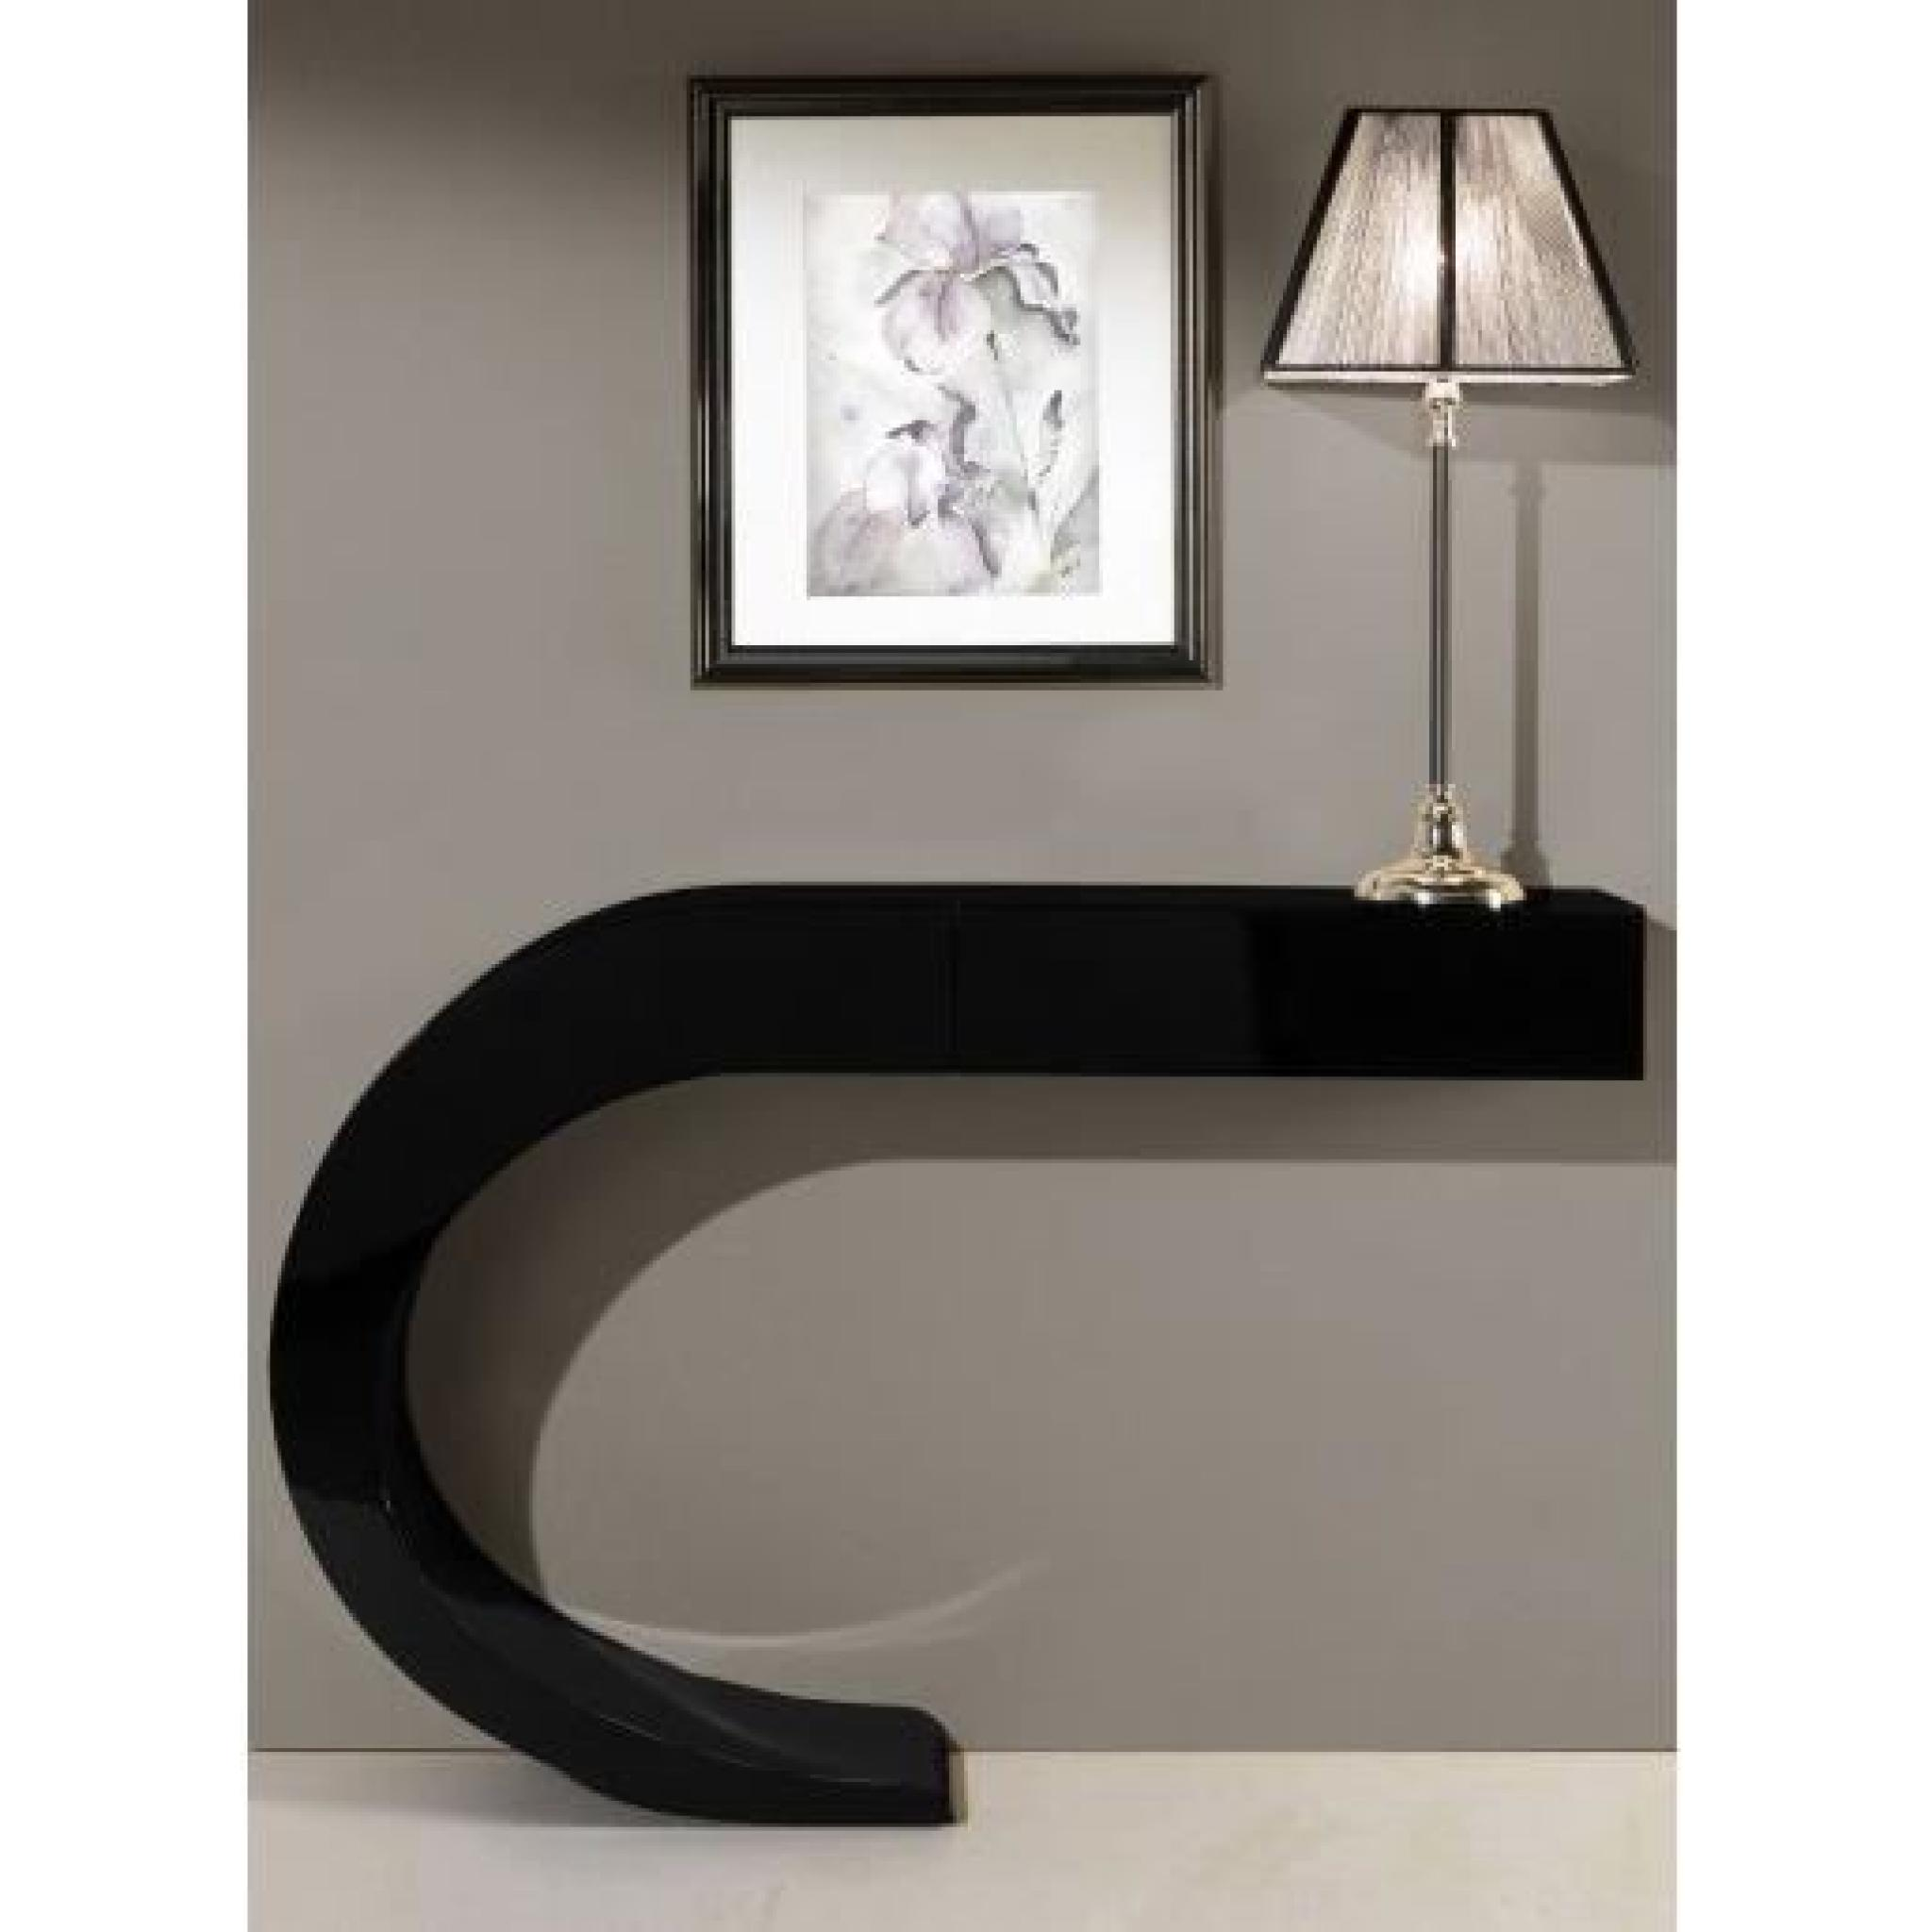 console design a rien noir laqu 1t ue achat vente console meuble pas cher couleur et. Black Bedroom Furniture Sets. Home Design Ideas